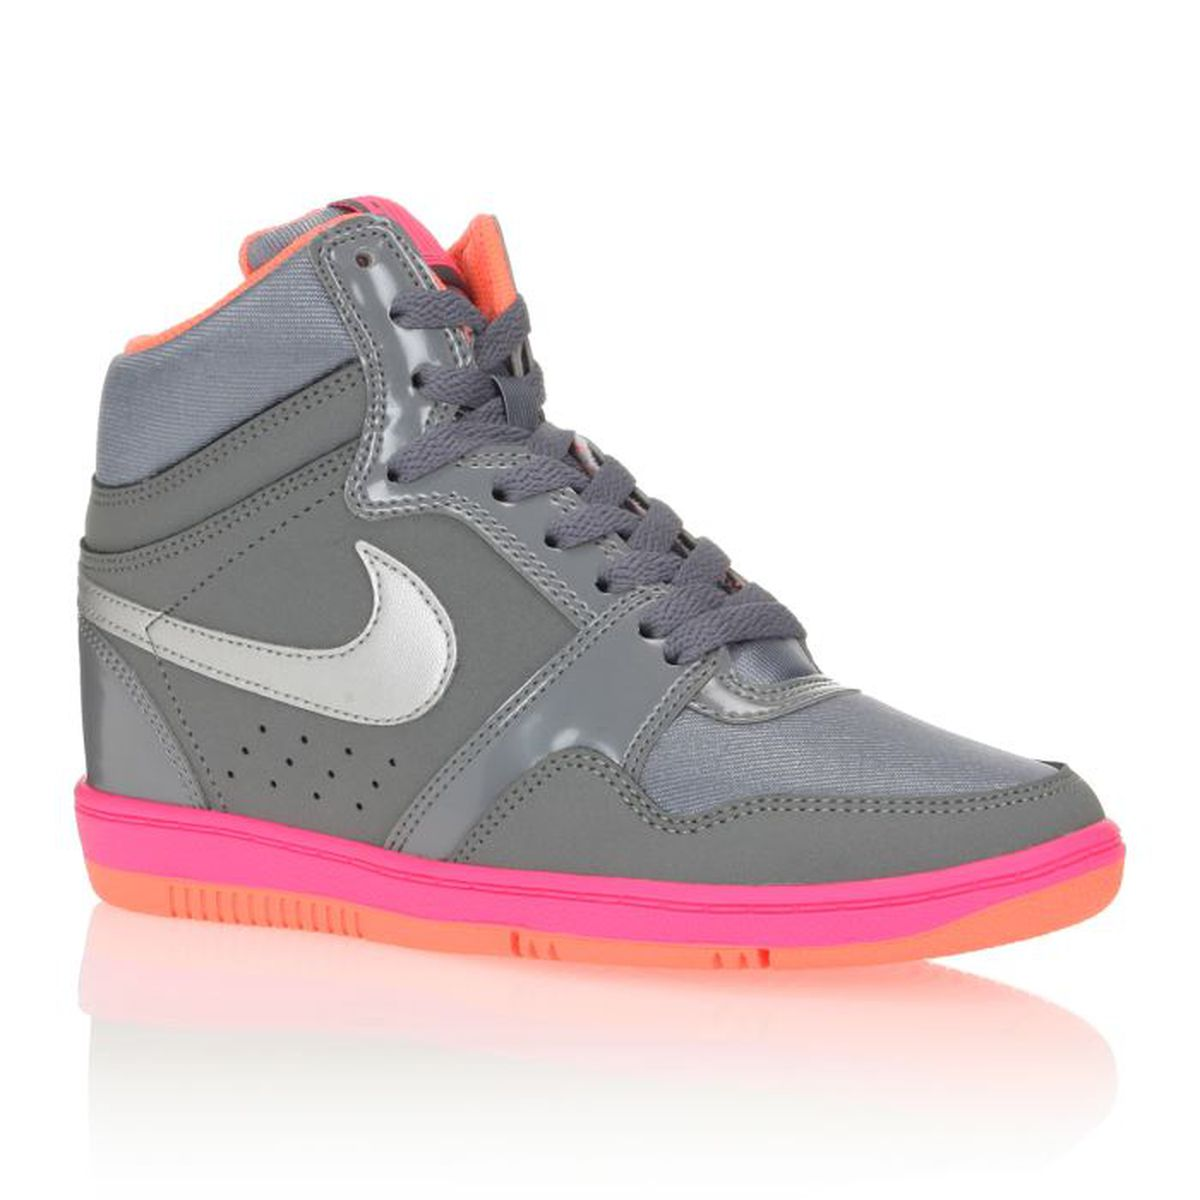 Force Femme Nike Achat Baskets Gris High Basket Vente Sky 5RqZUa